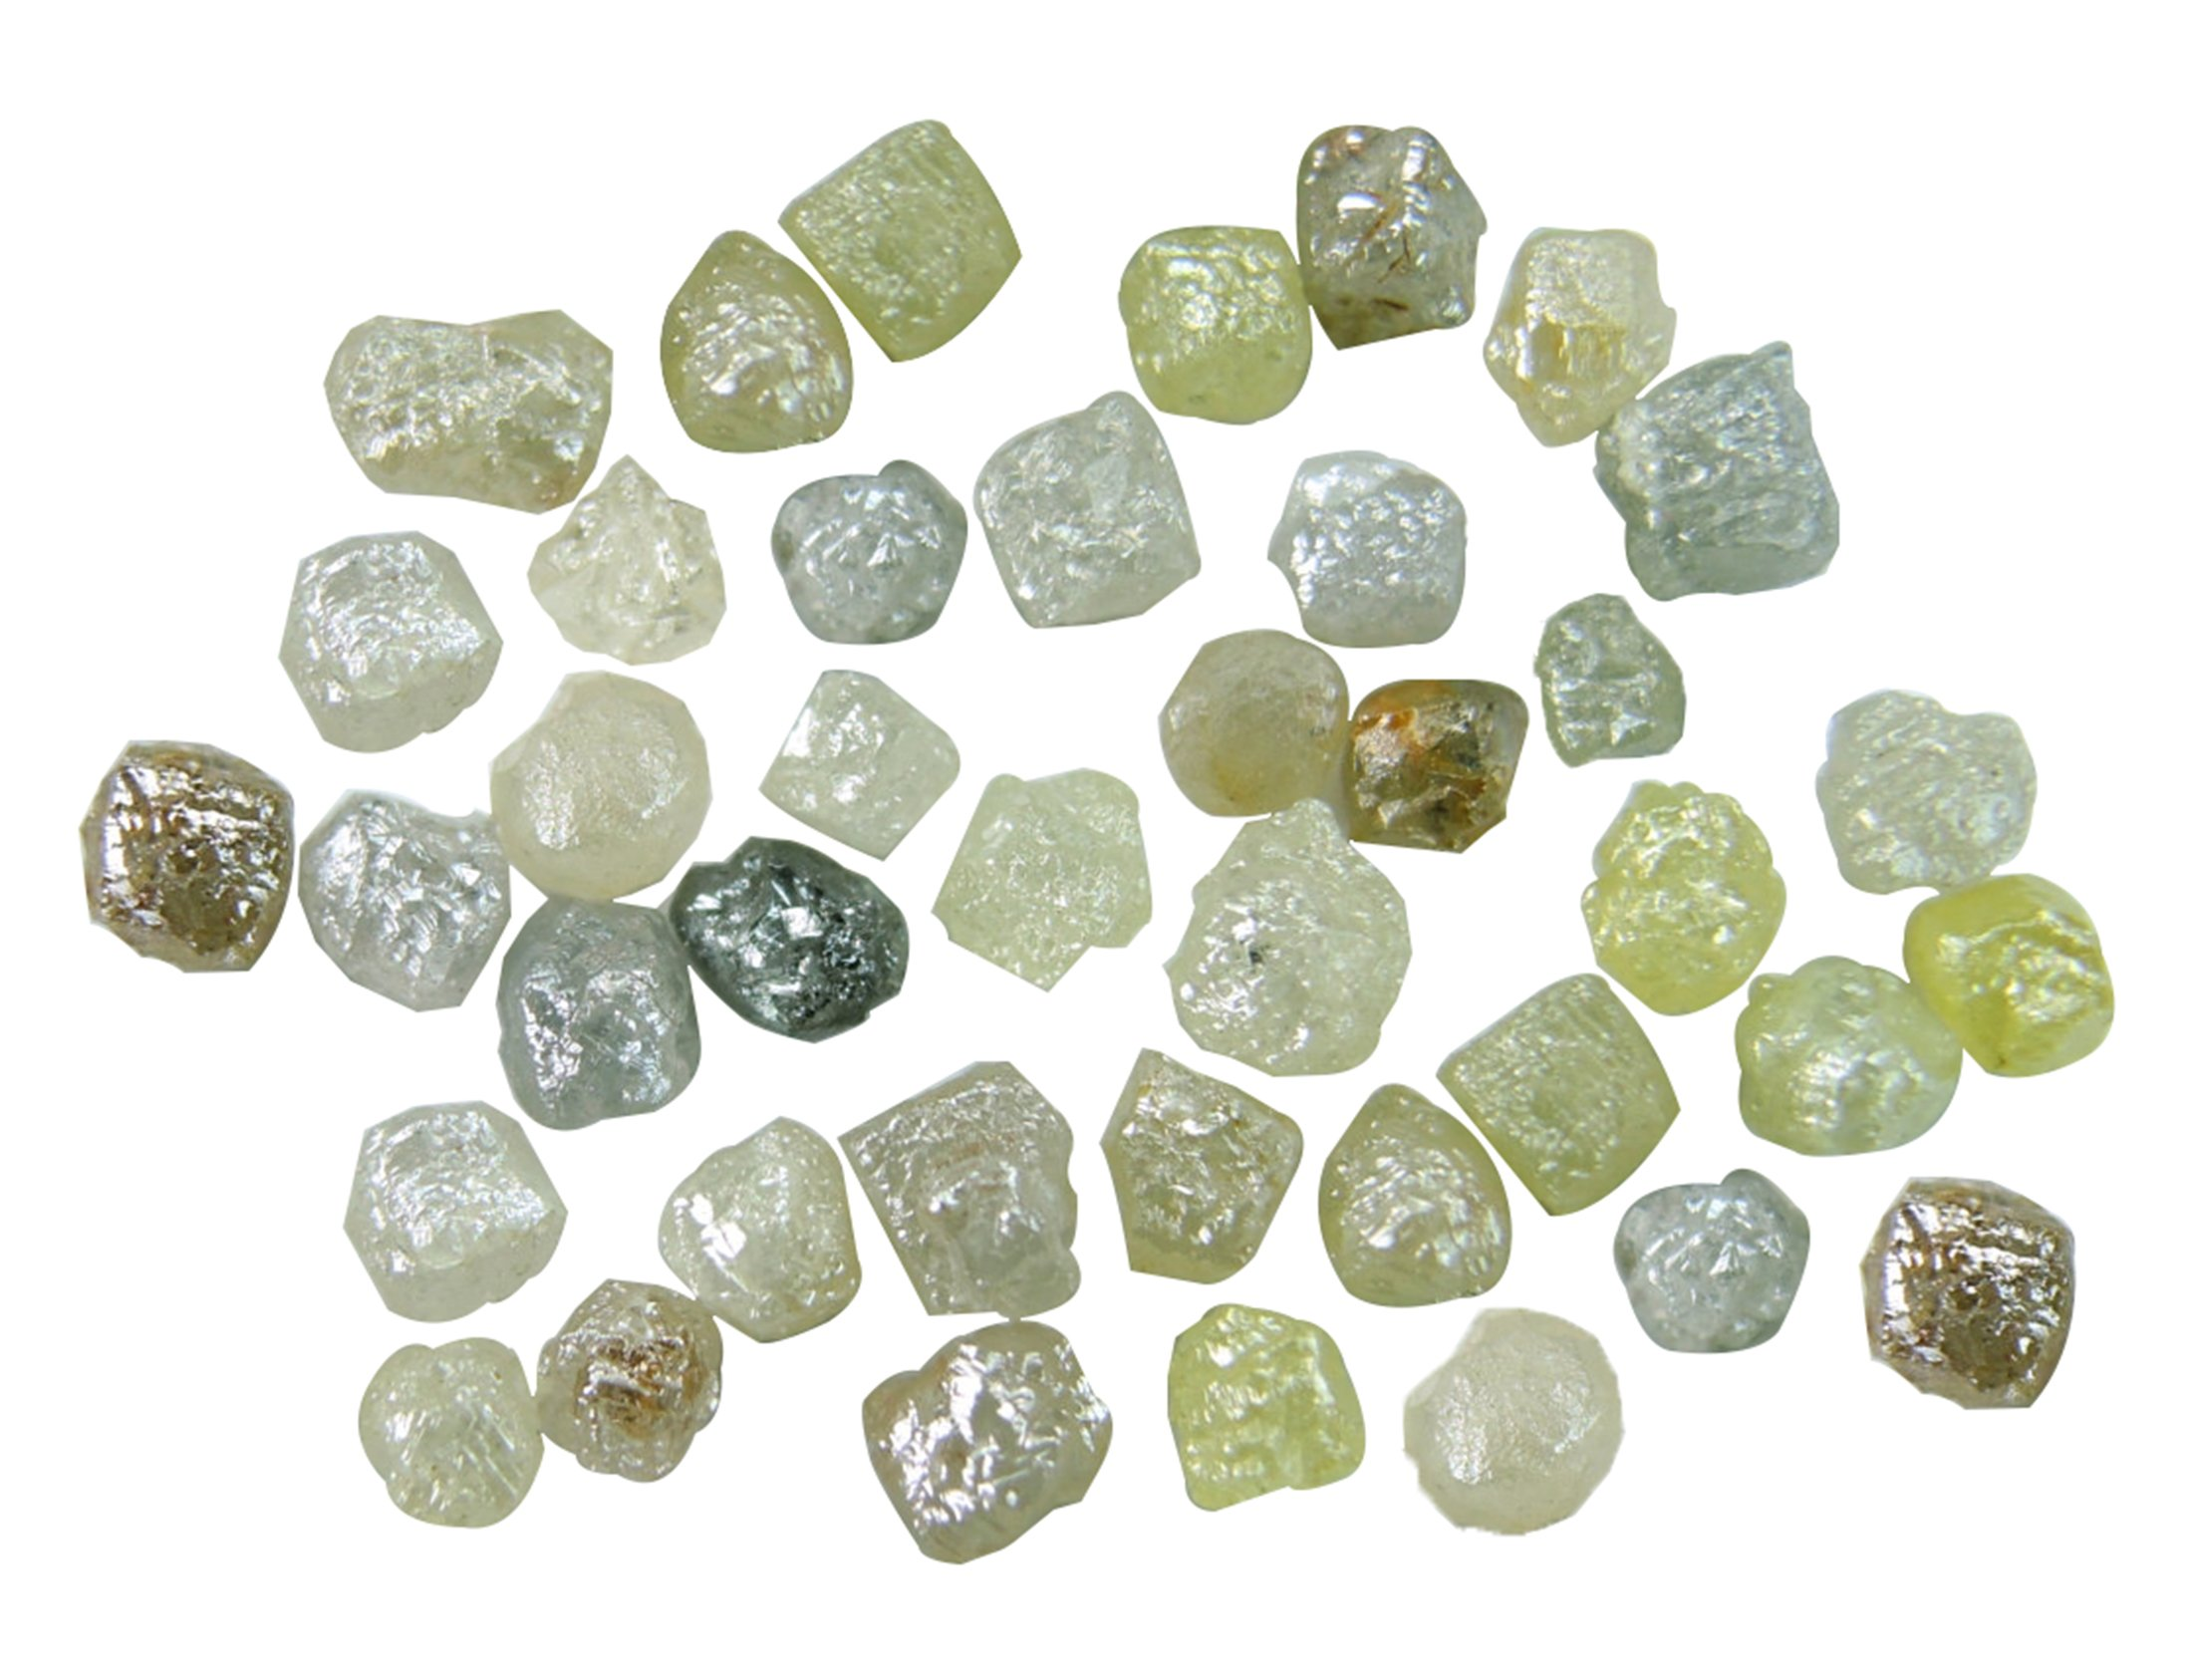 Natural Loose Diamond Rough Uncut Cube Mix Color I3 Clarity 2.00 to 3.50 MM 2.00 Cts Lot Q30